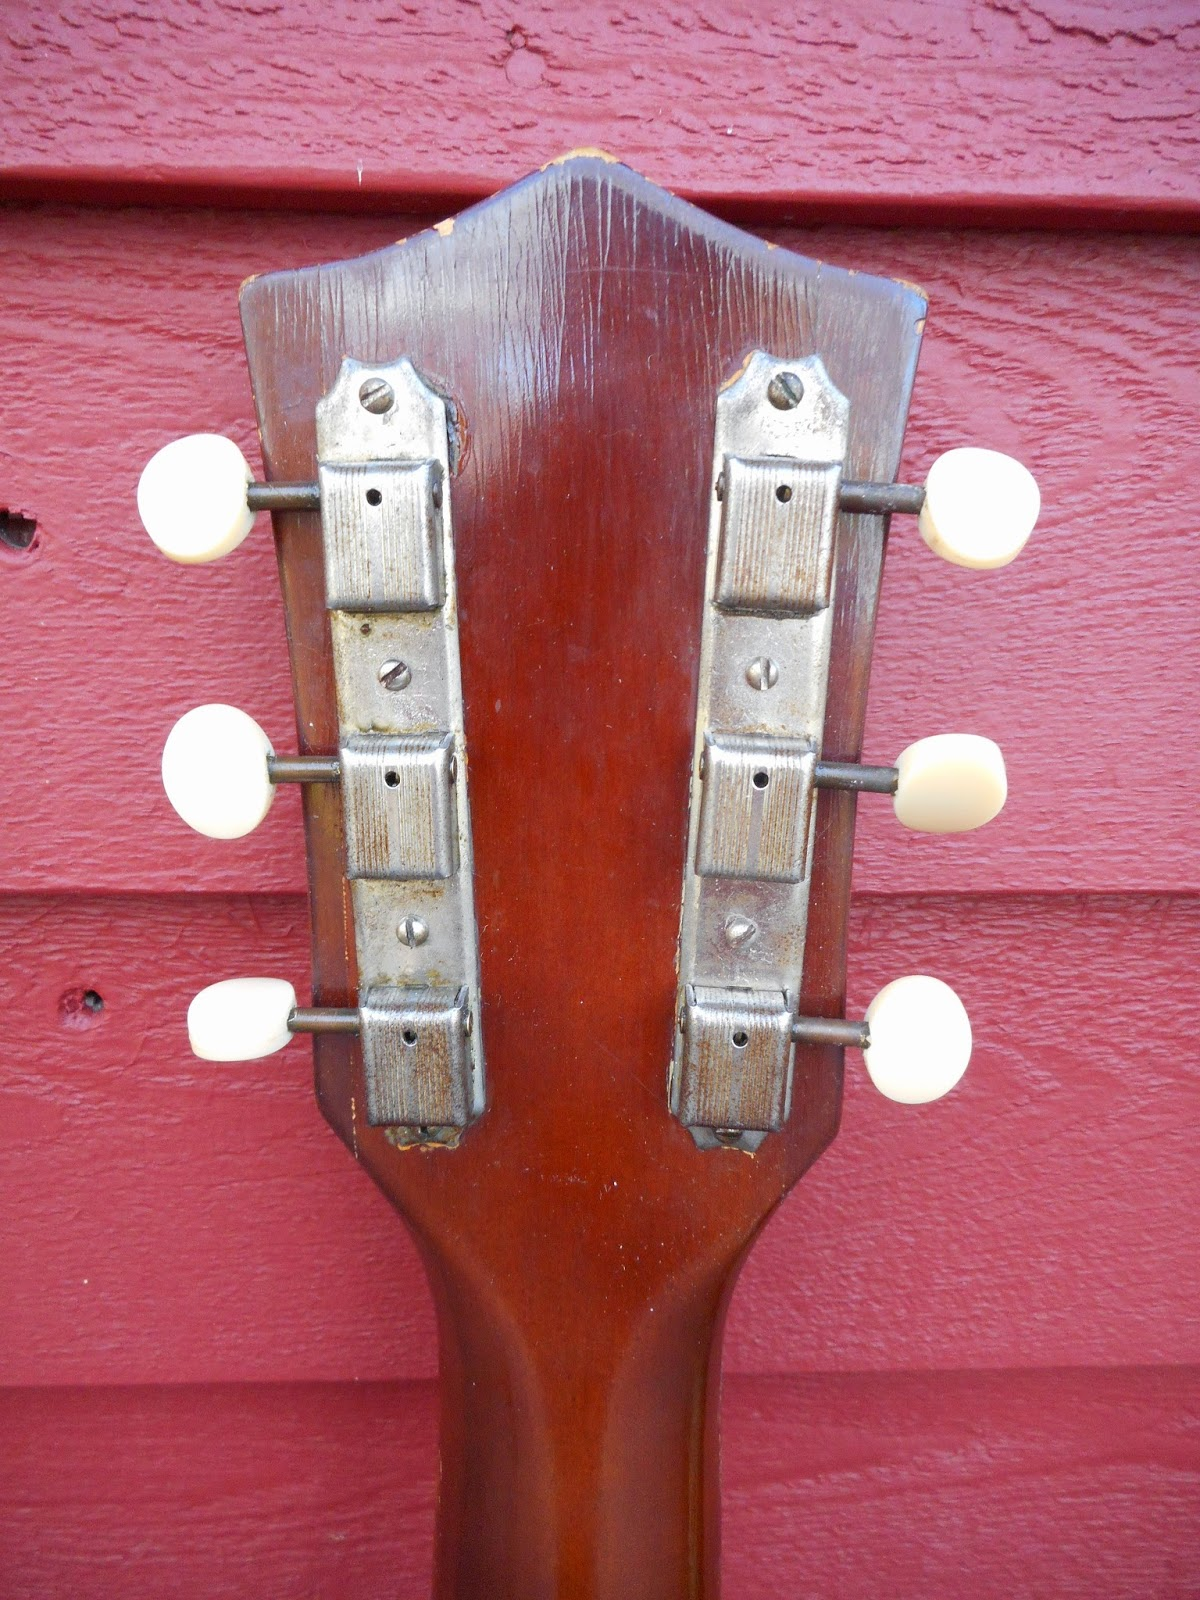 ... Kay K161 Thin Twin Electric Guitar Another Wonderful Guitar Mystery Brought To You By The Kay Guitar Manufacturing Company Kay Guitar Wiring Diagrams & Kay Guitar Wiring Diagrams - wiring diagrams